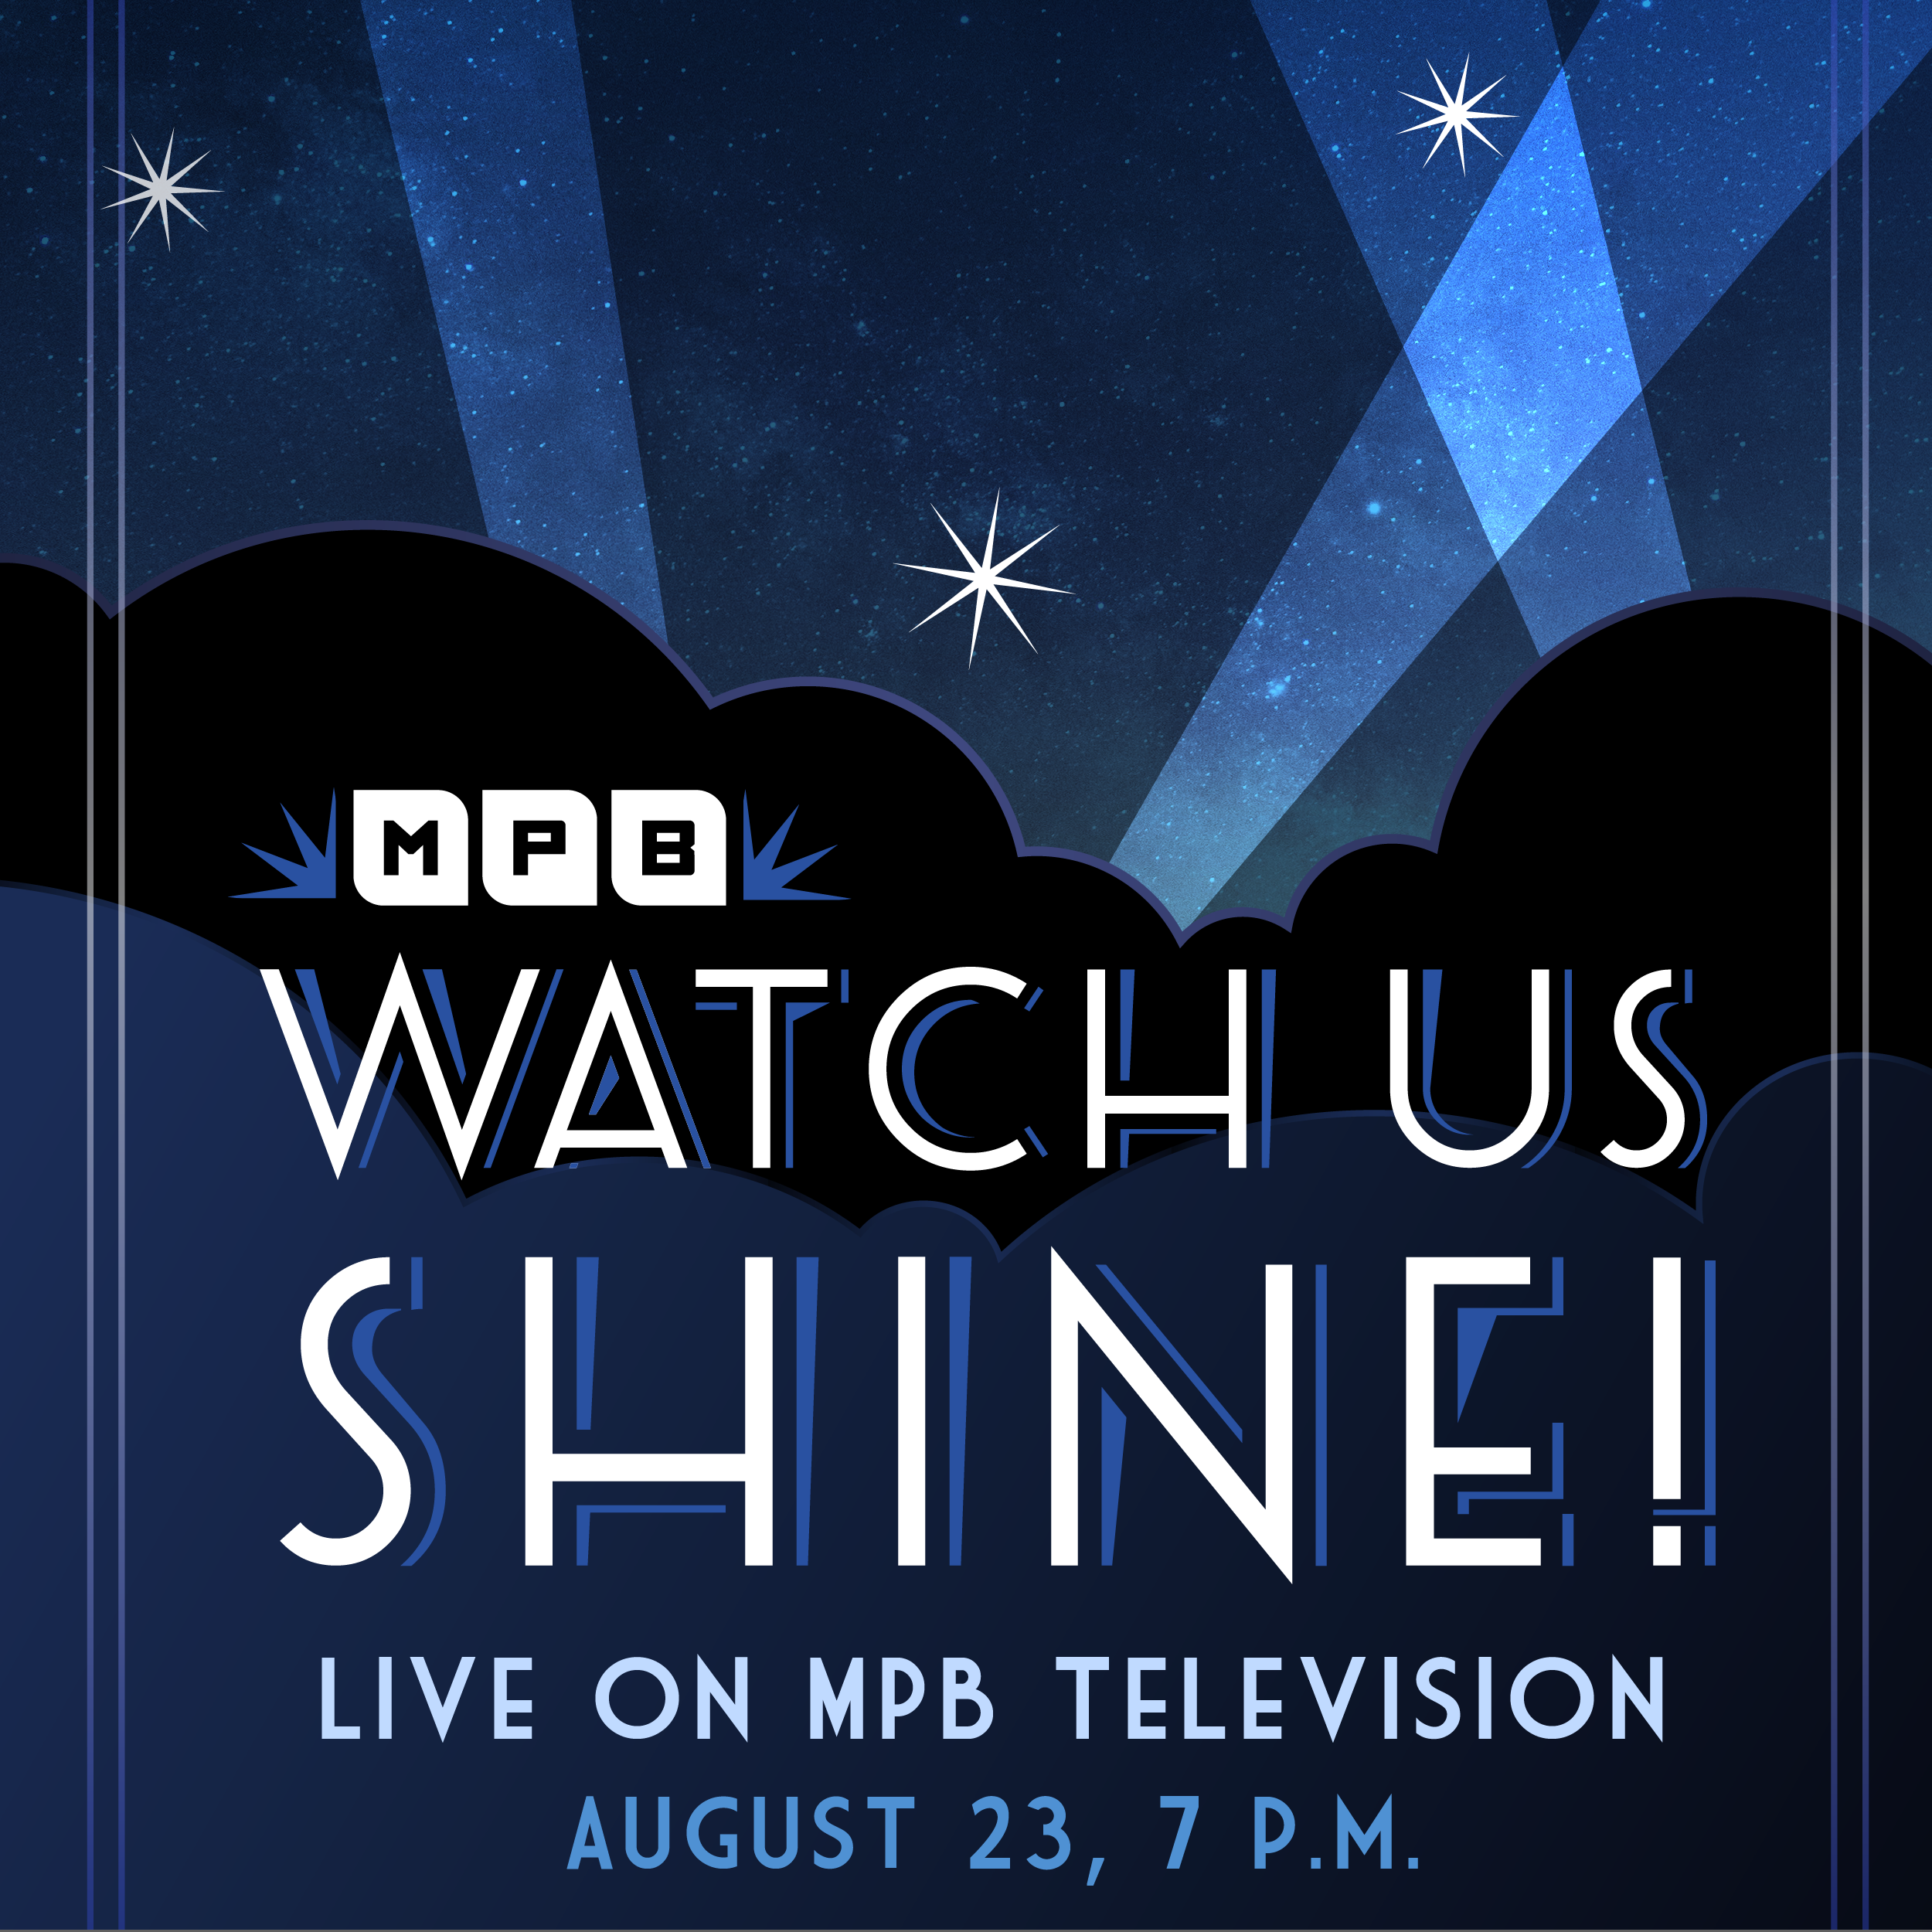 Watch the MPB Pledge special Watch Us Shine on Thursday, August 23 at 7 p.m. on MPB TV.